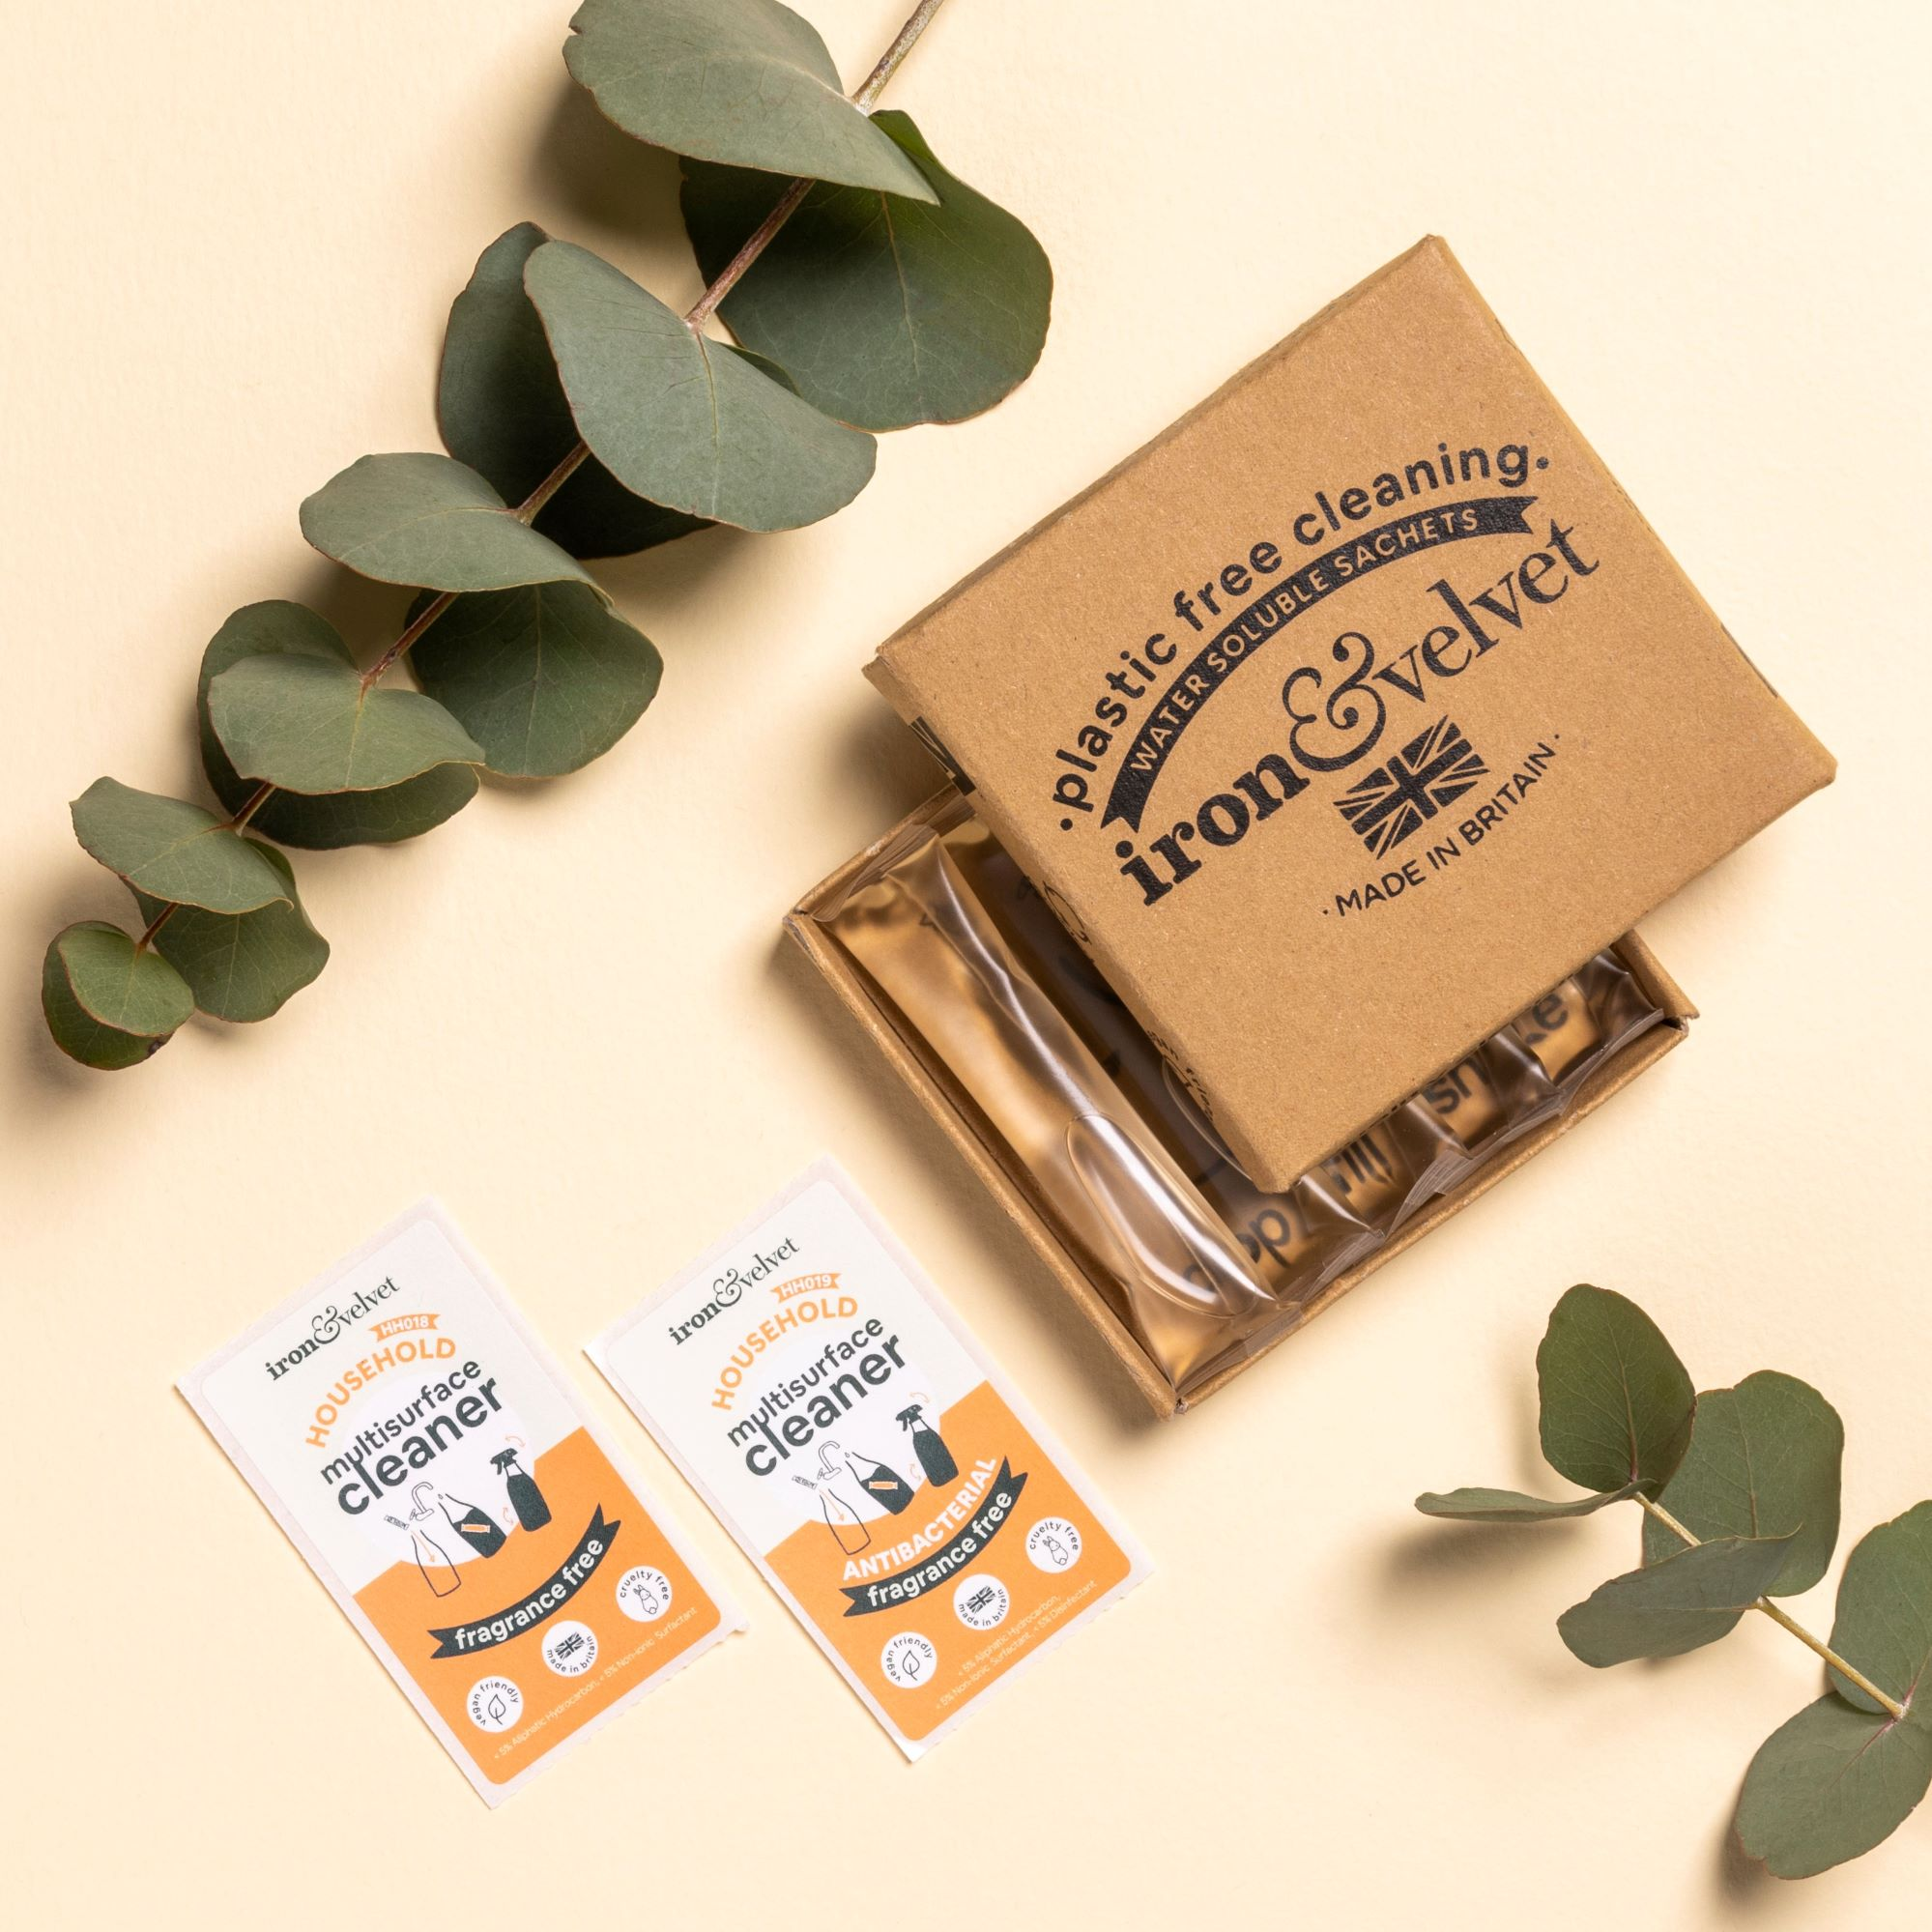 Flat lay image of our Fragrance free refill sachets in a open box with our labels. Foliage as decoration.